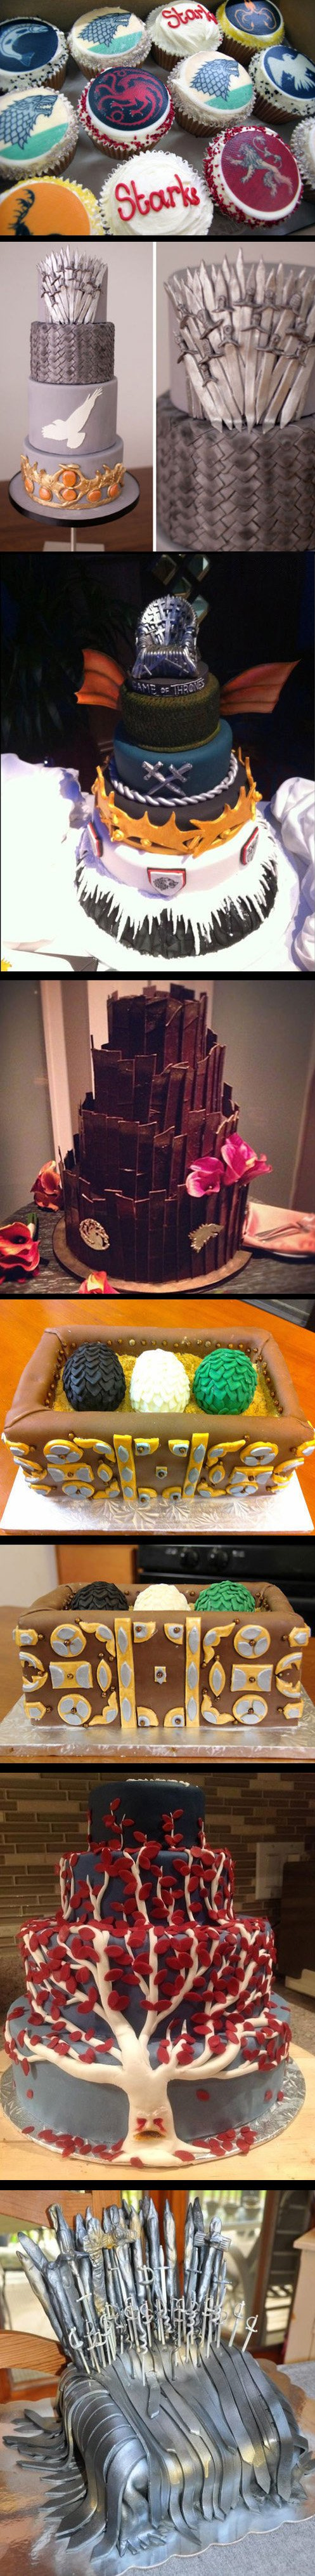 Game of Thrones Cakes and Cupcakes